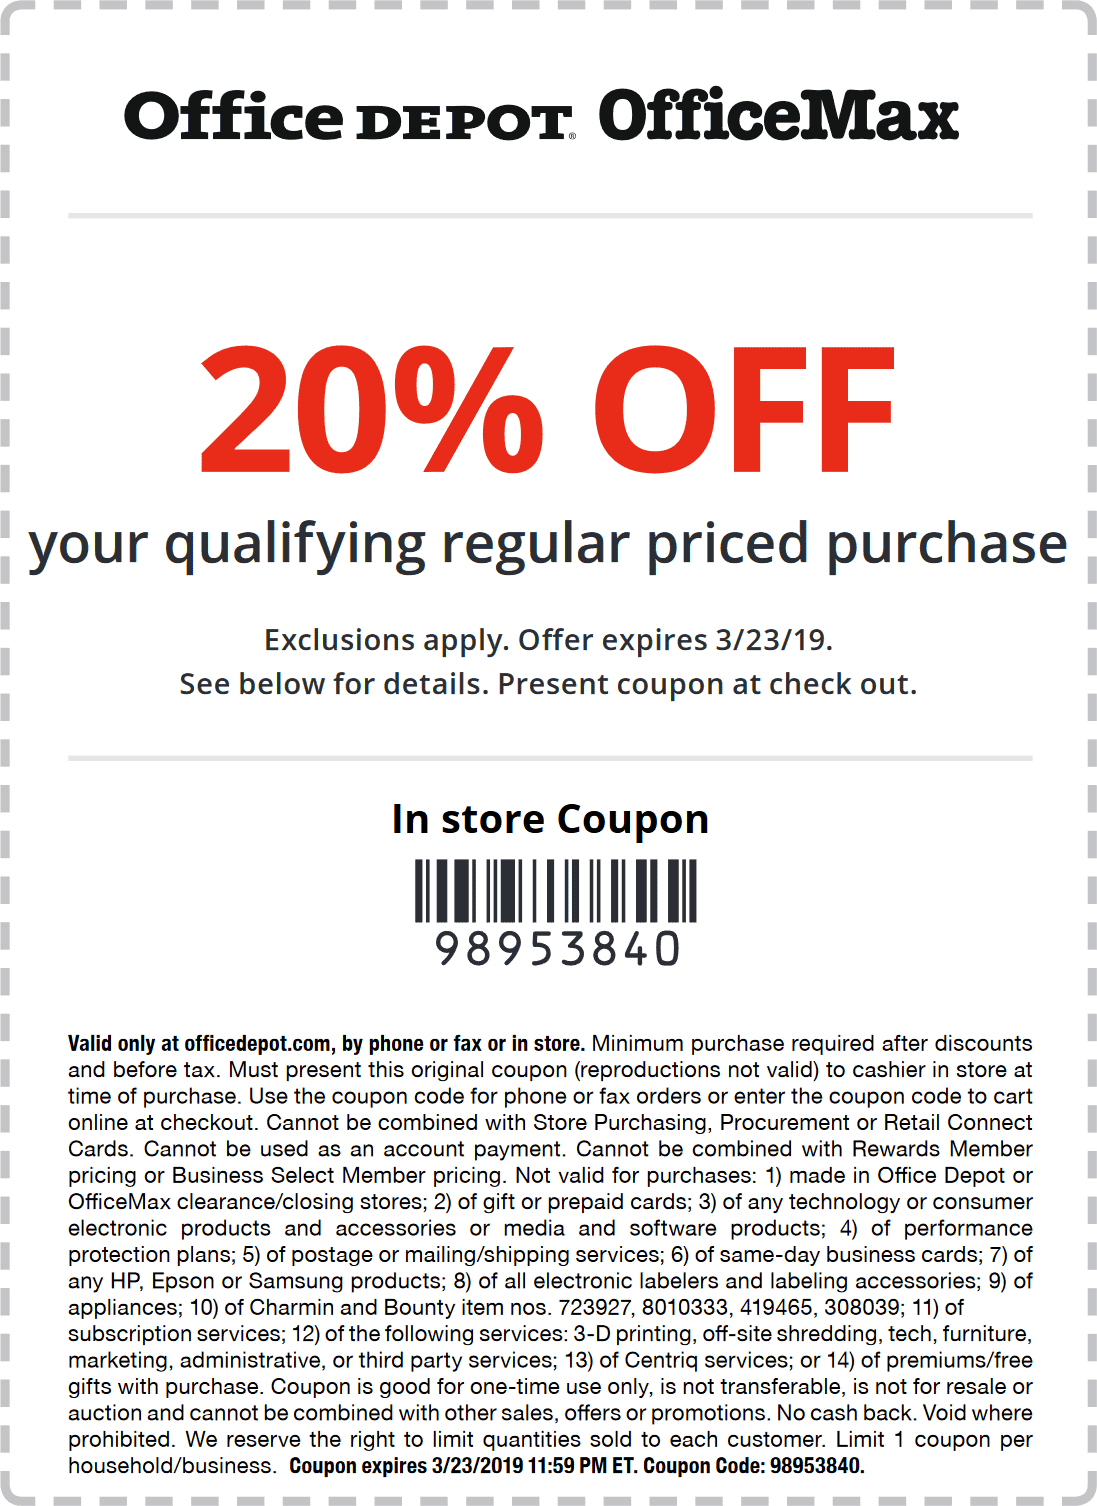 Office Depot Coupon July 2019 20% off at Office Depot & OfficeMax, or online via promo code 98953840